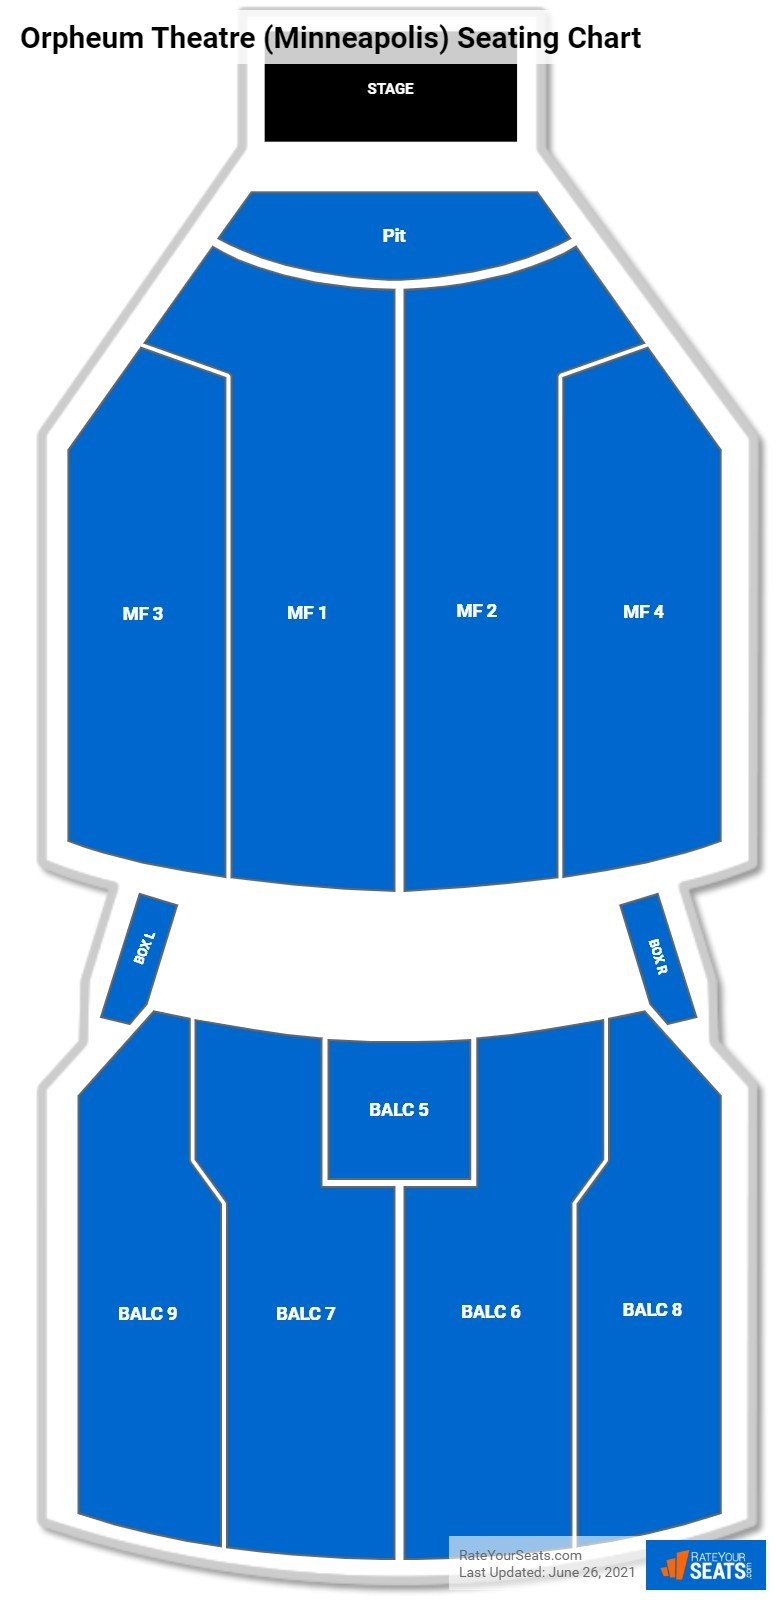 Orpheum Theatre (Minneapolis) Seating Chart